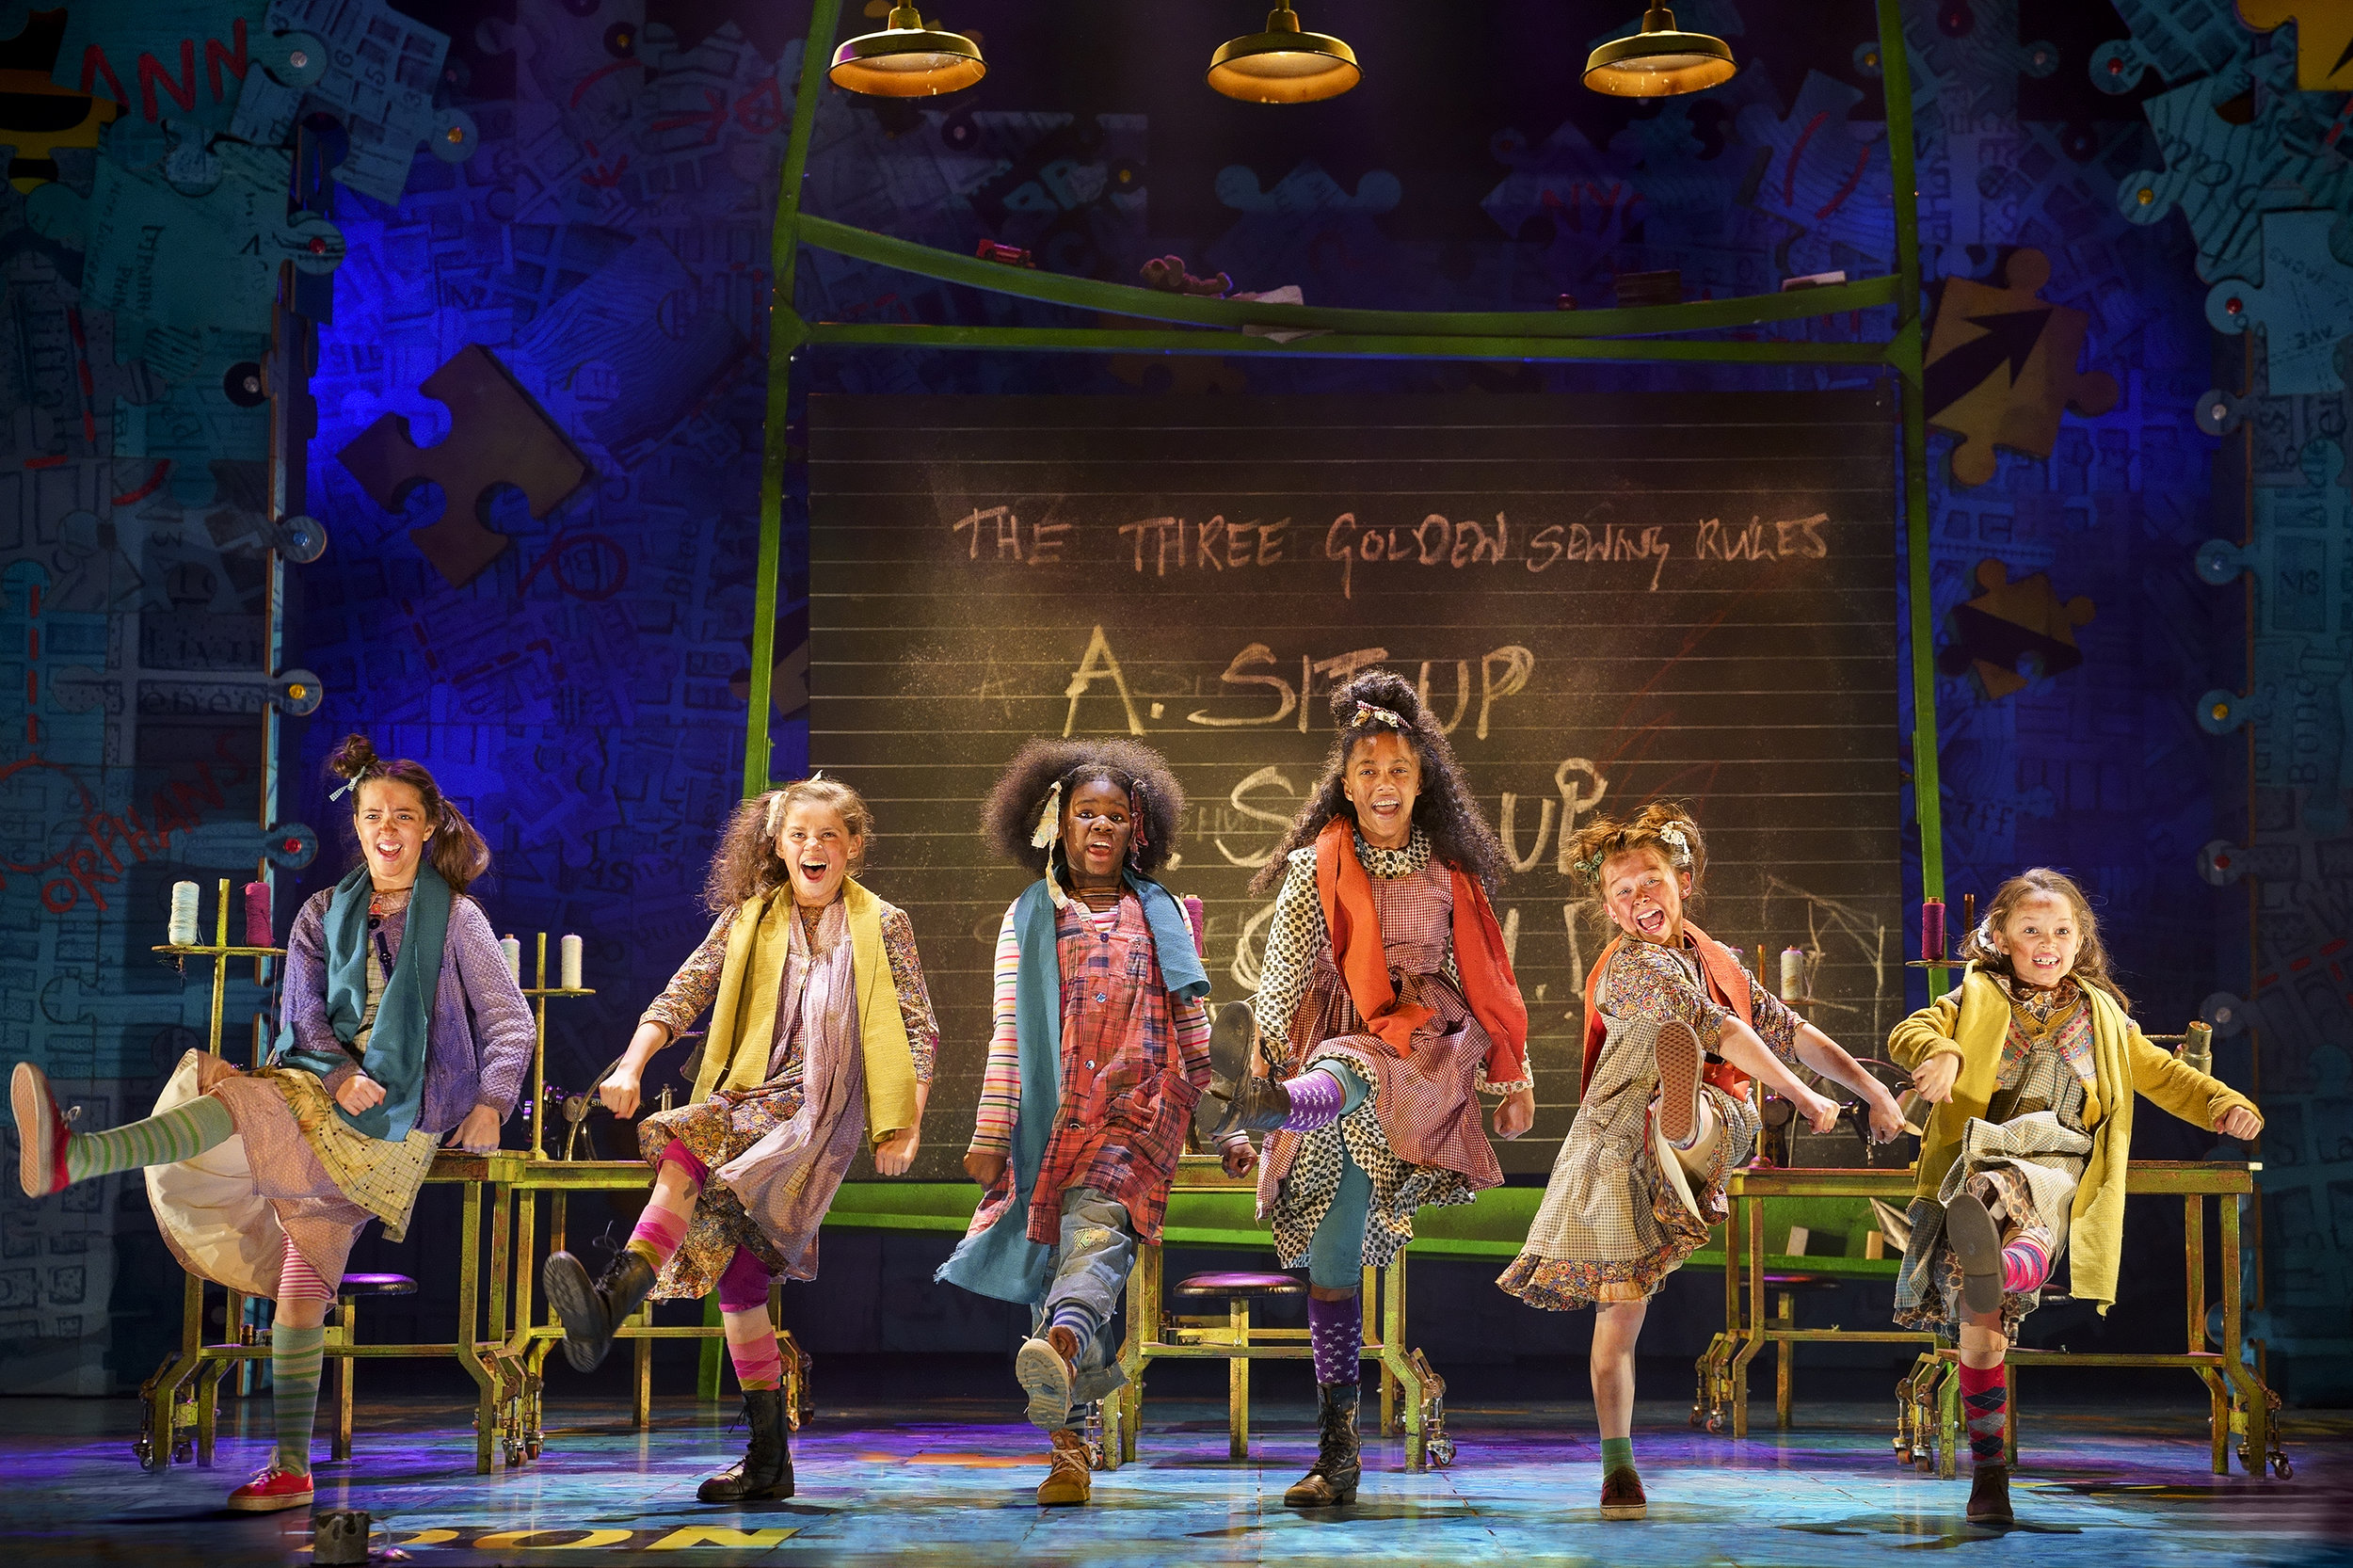 Ensemble cast in Annie The Musical which plays Wales Millennium Centre from August 19-31, 2019. Photo Paul Coltas